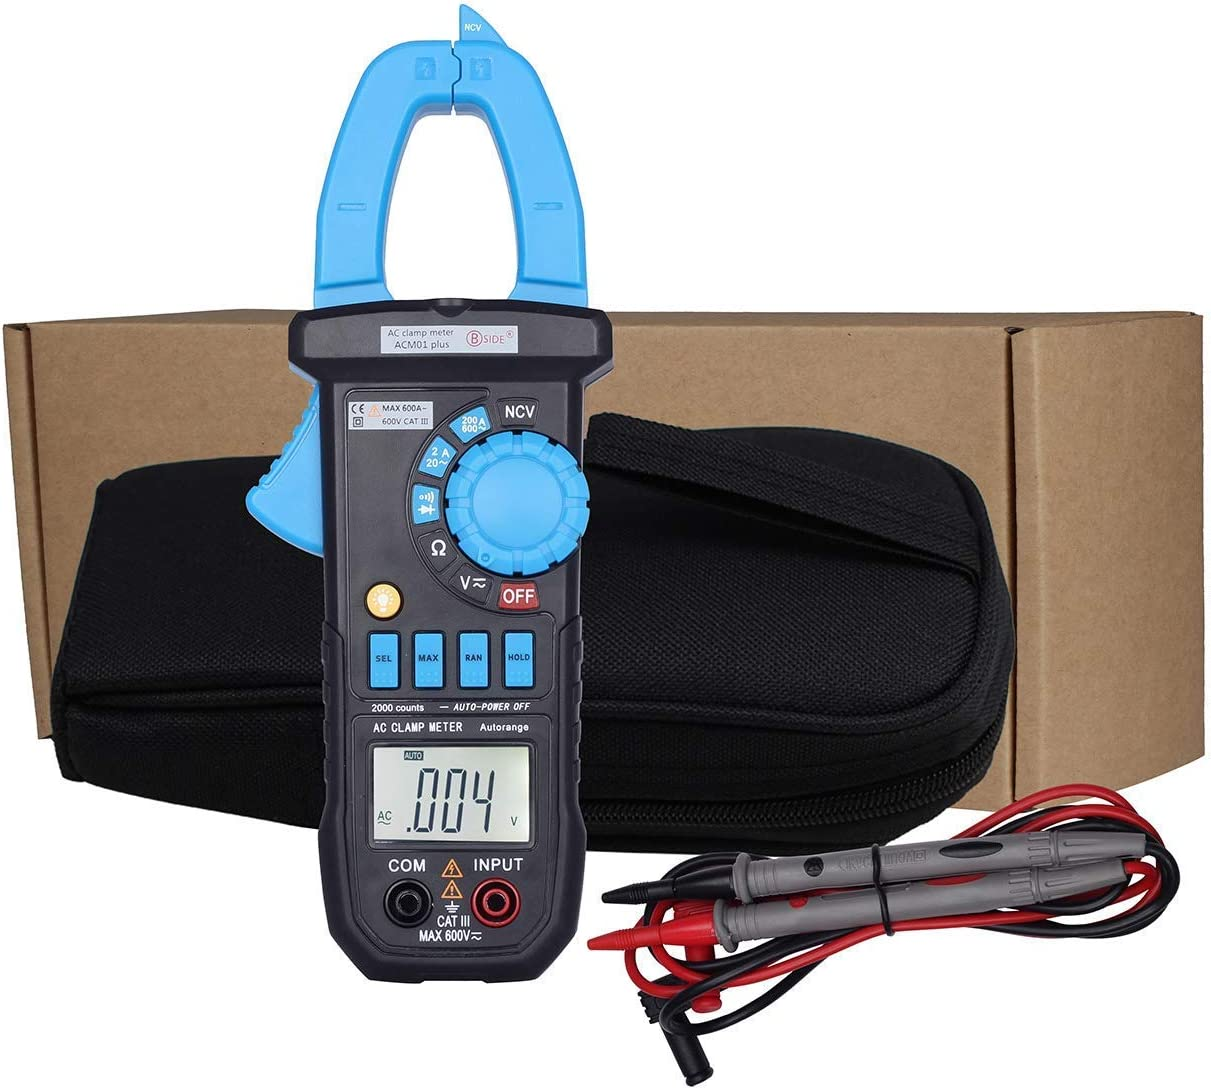 XUXUWA Current Clamp Our shop most popular Max 55% OFF Meter Portable Multimeter Scientific